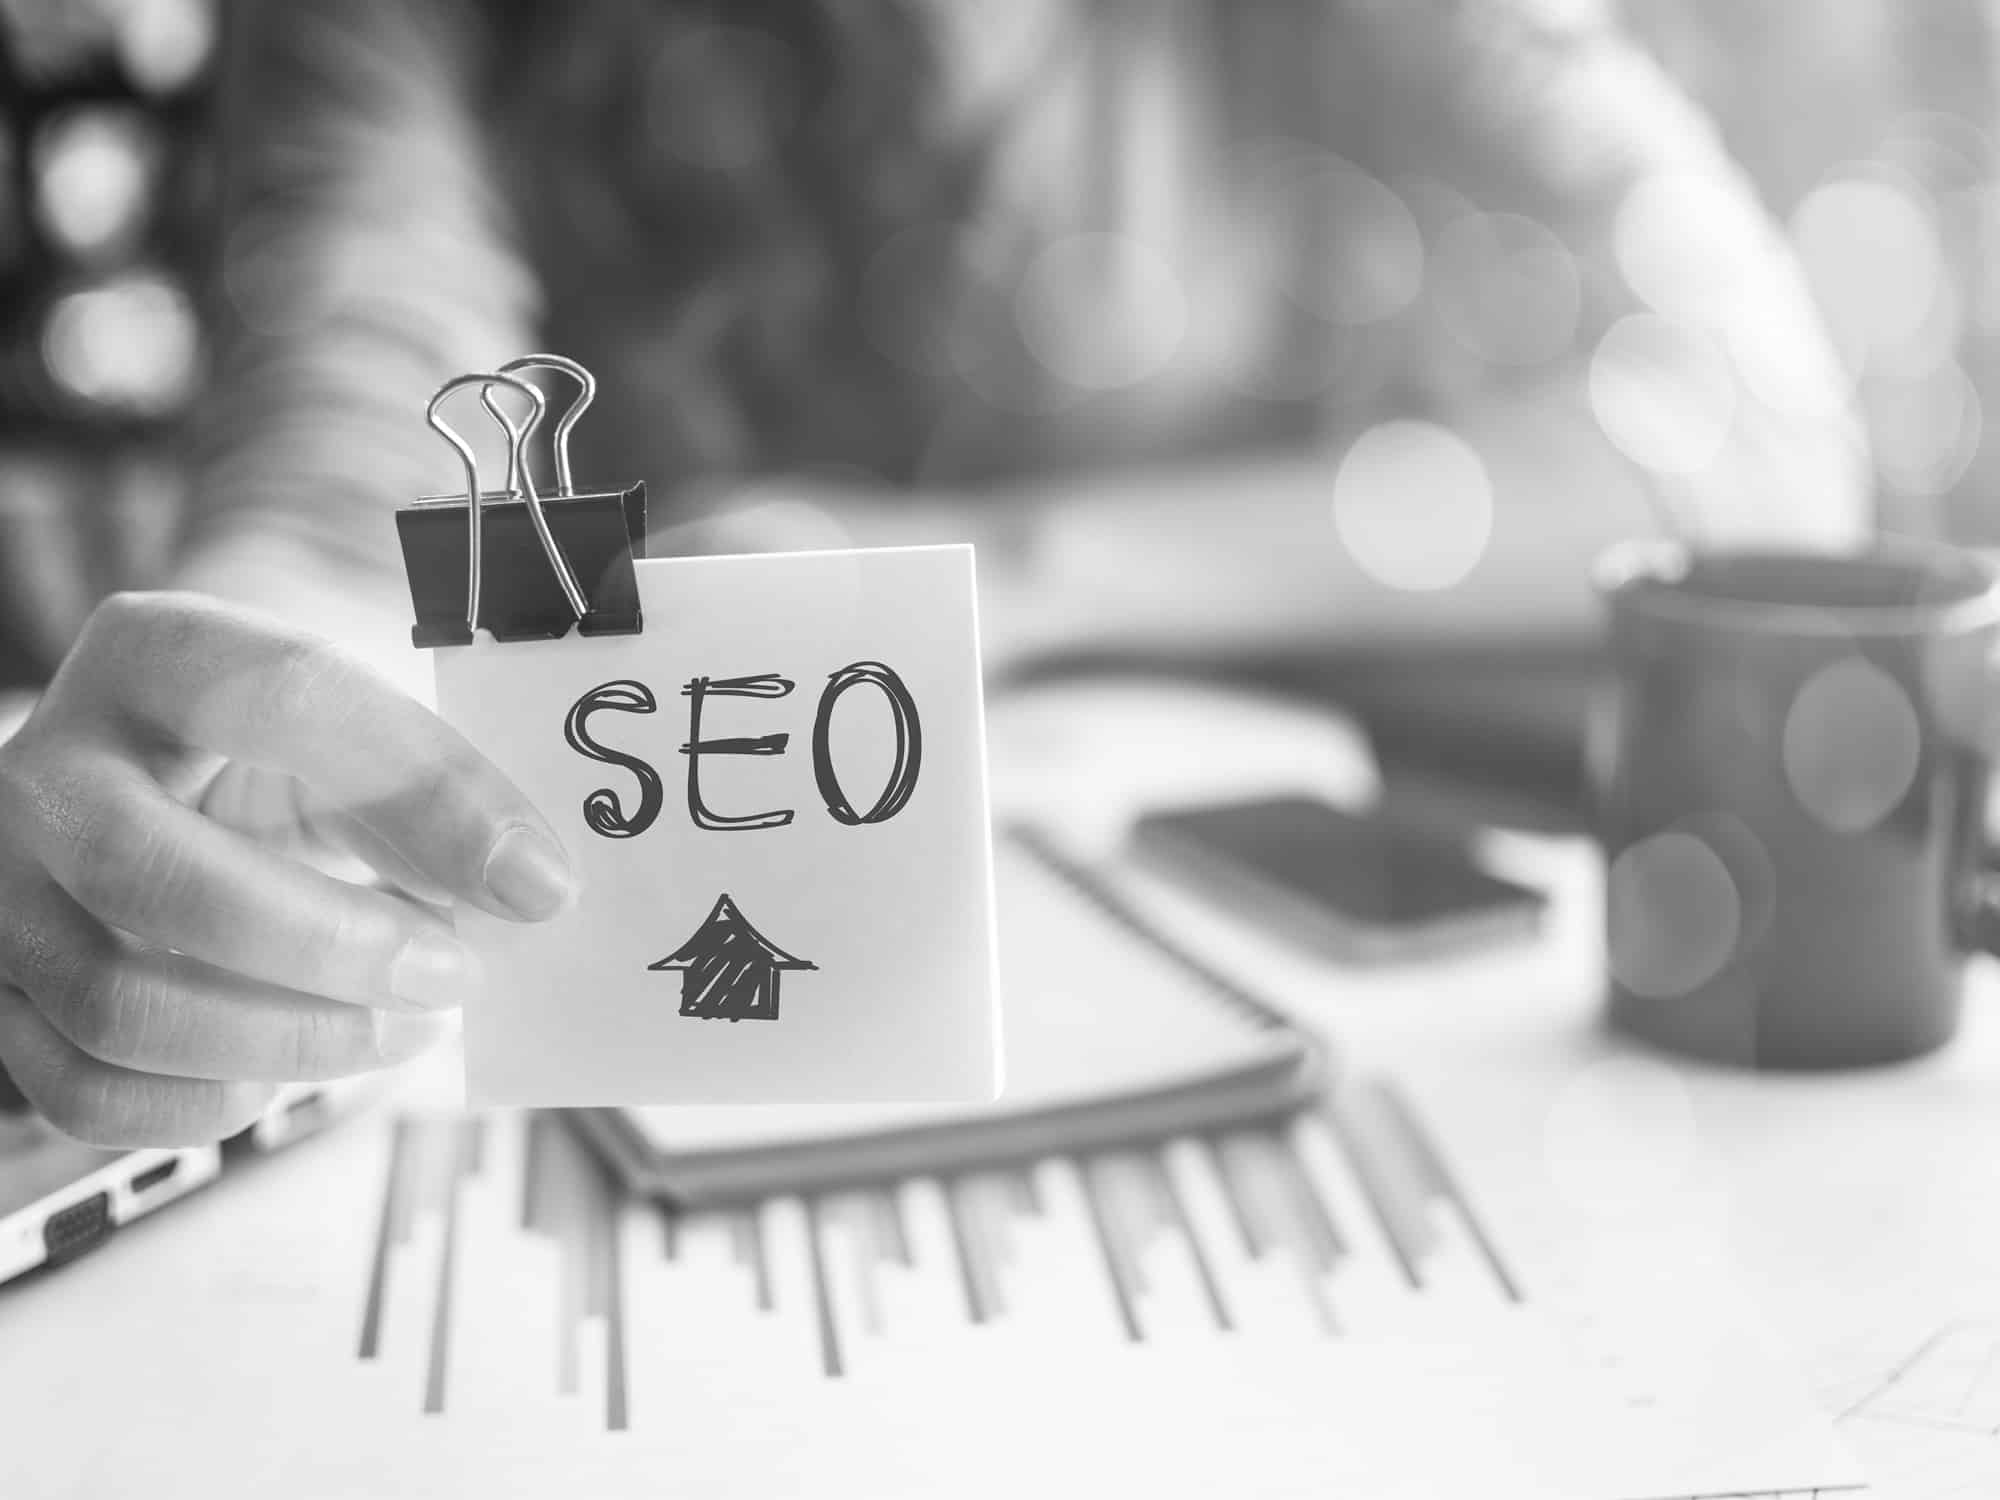 Dental SEO on post it note black and white image